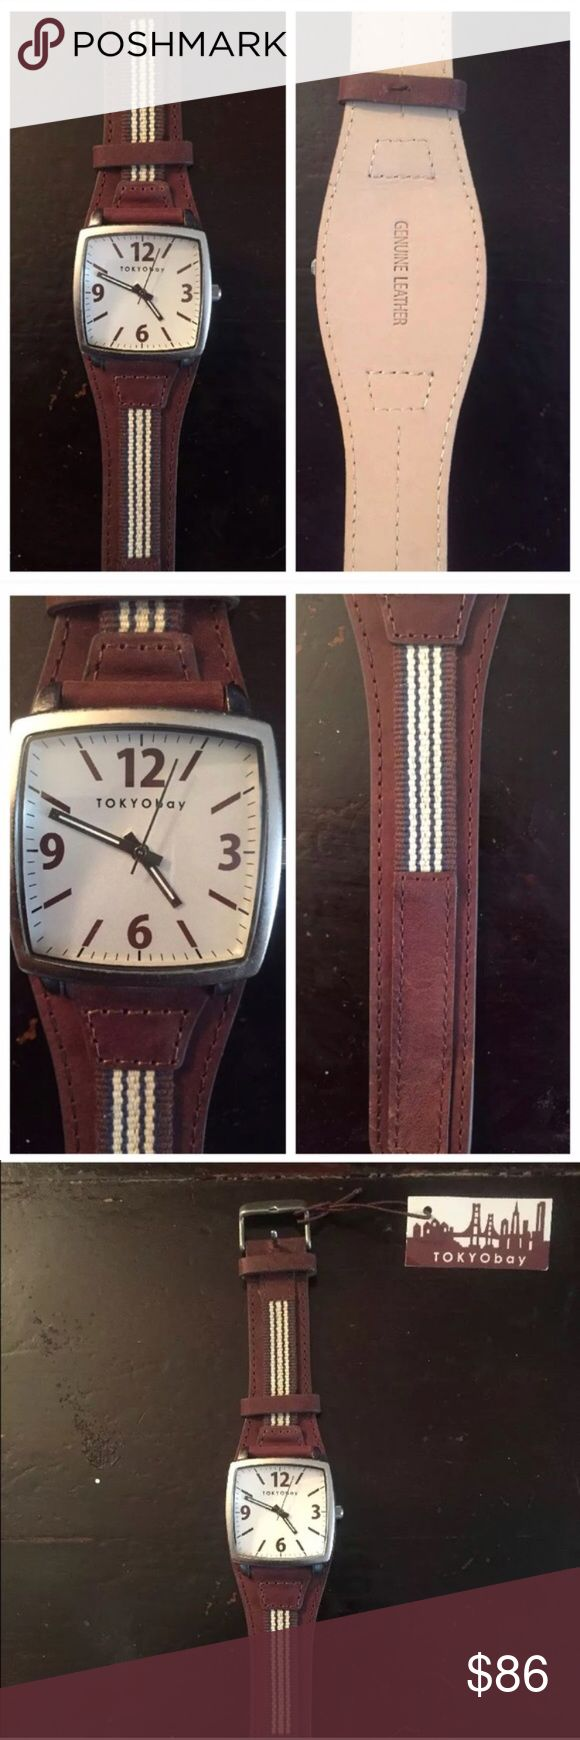 TokyoBay Men's Wristwatch, Leather, NWT, Analog Men's watch by Tokyo Bay. Brand new with tags. Just needs a new battery. Otherwise perfect condition! Quartz (battery), Analog, $175 Retail TOKYObay Accessories Watches